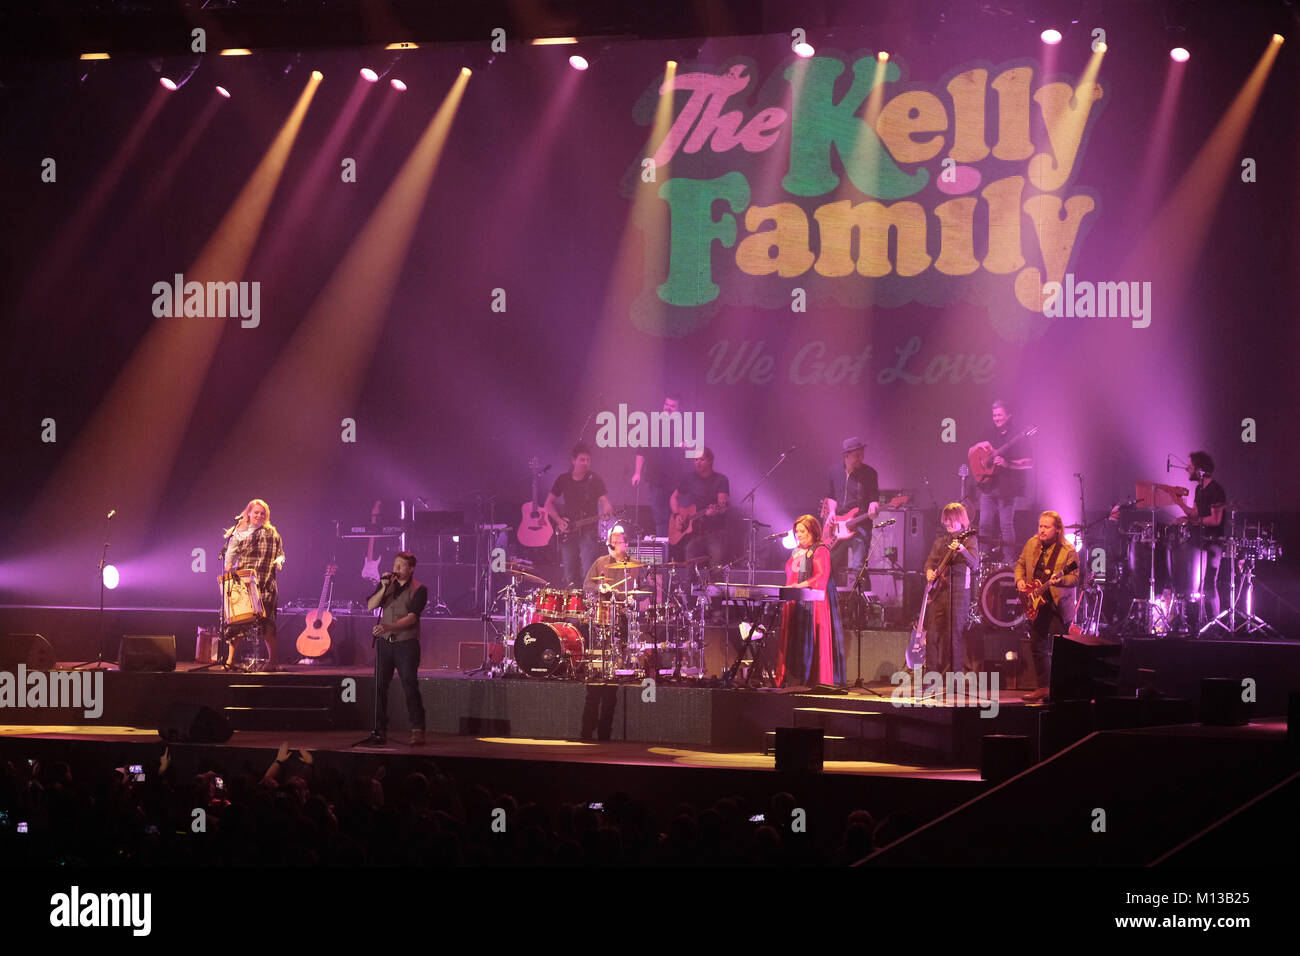 Riesa, Germany. 25th Jan, 2018. Familial pop and folk band 'Kelly Family' begins their concert tour in Riesa, - Stock Image